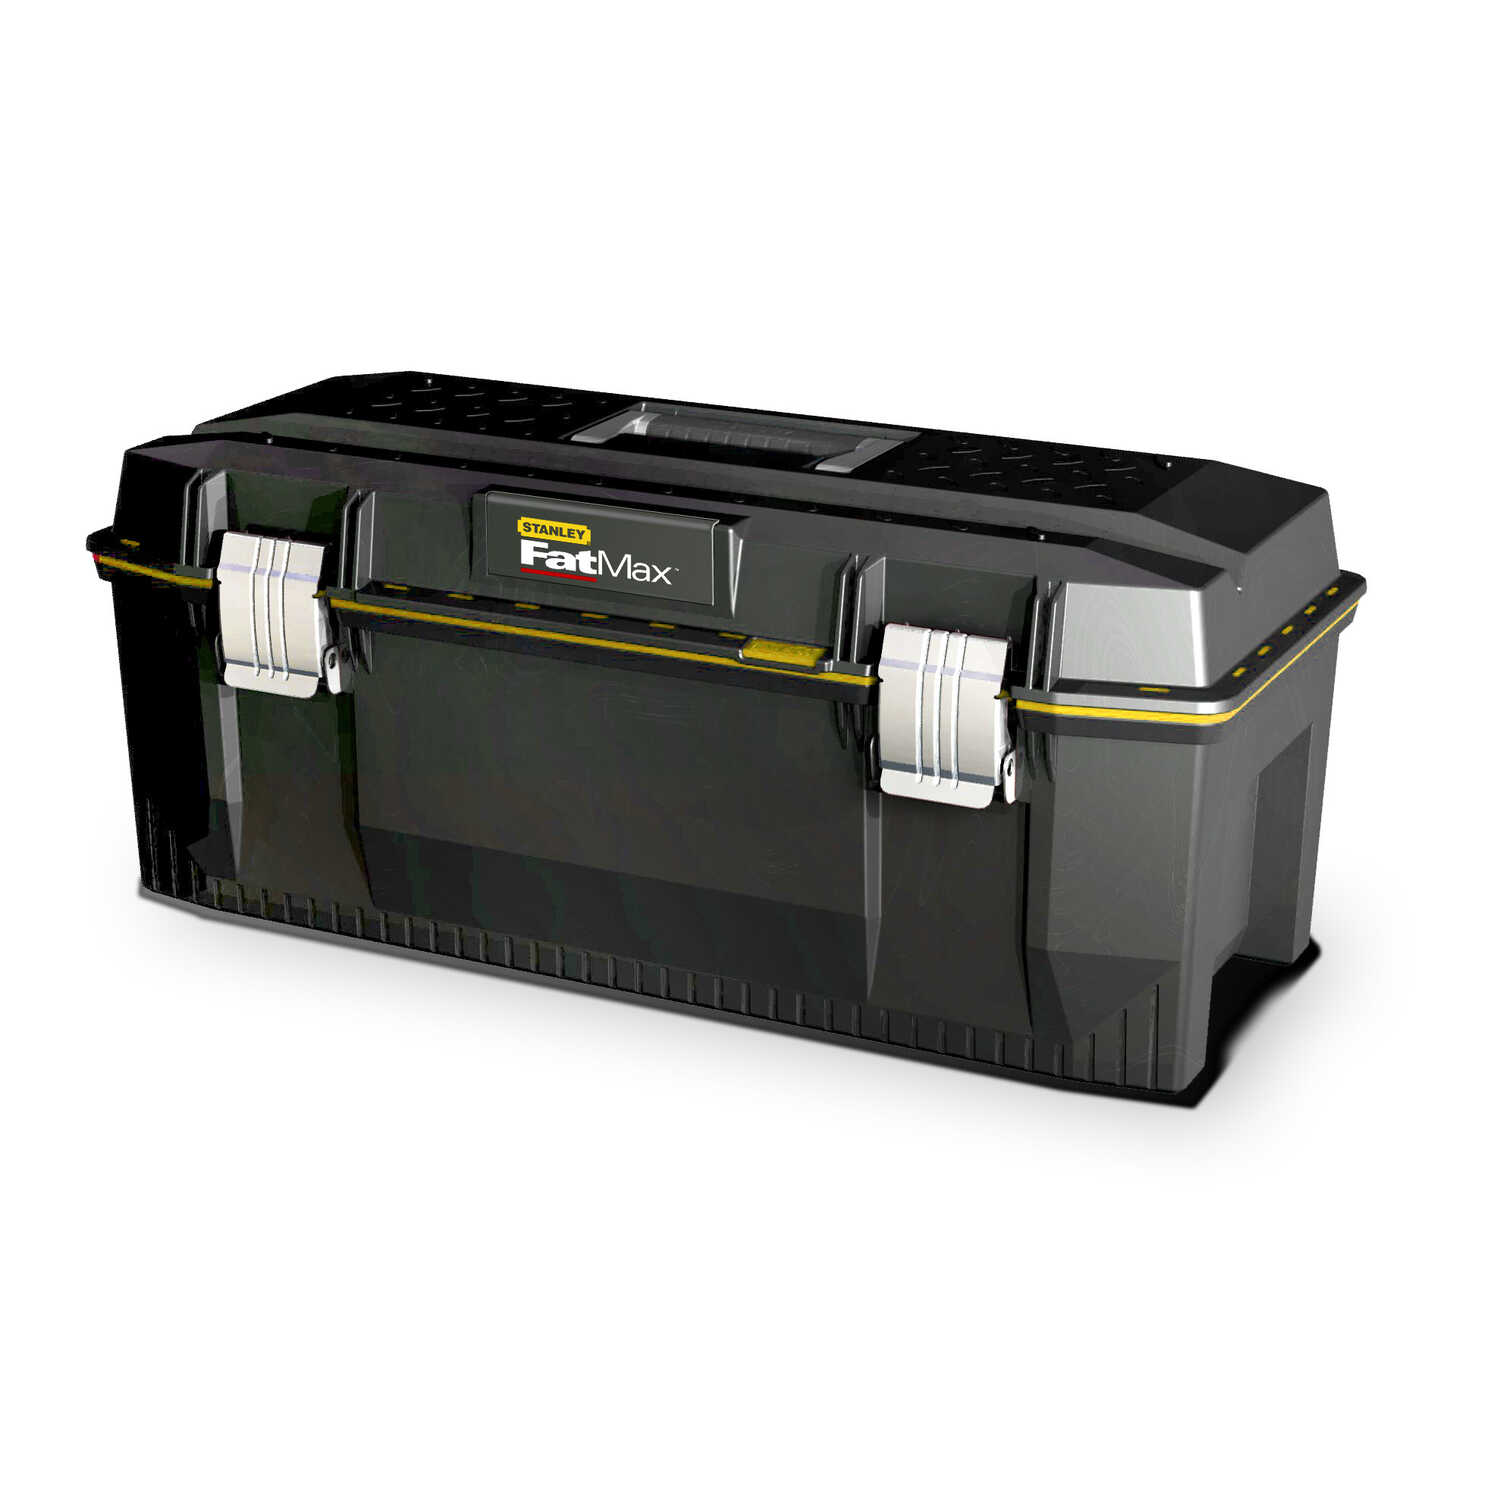 Stanley  Fatmax  27.3 in. Foam  Tool Box  13 in. W x 11 in. H Yellow/Black